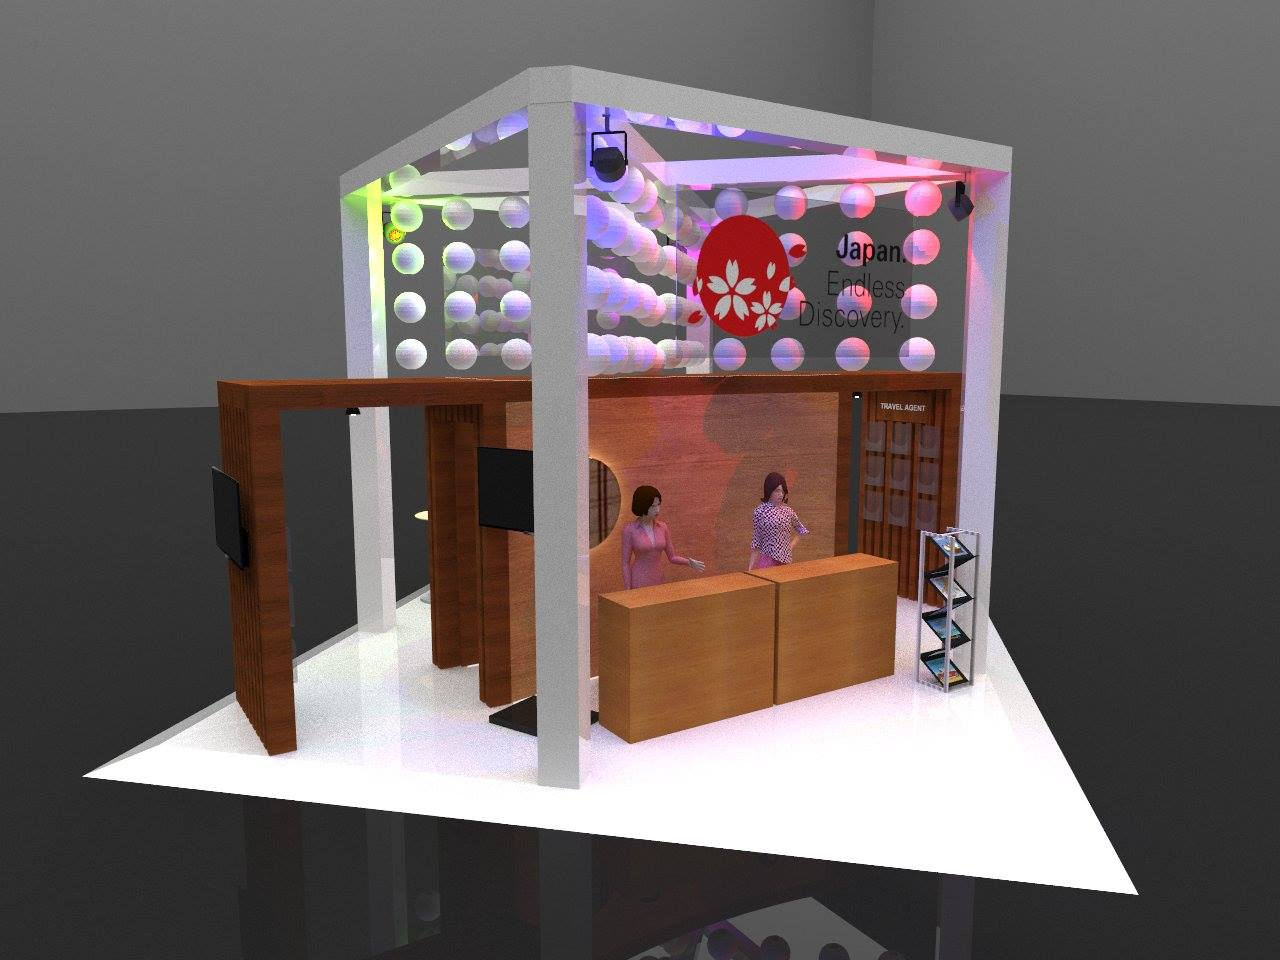 Booth Discovery Japan 6 x 6 meter